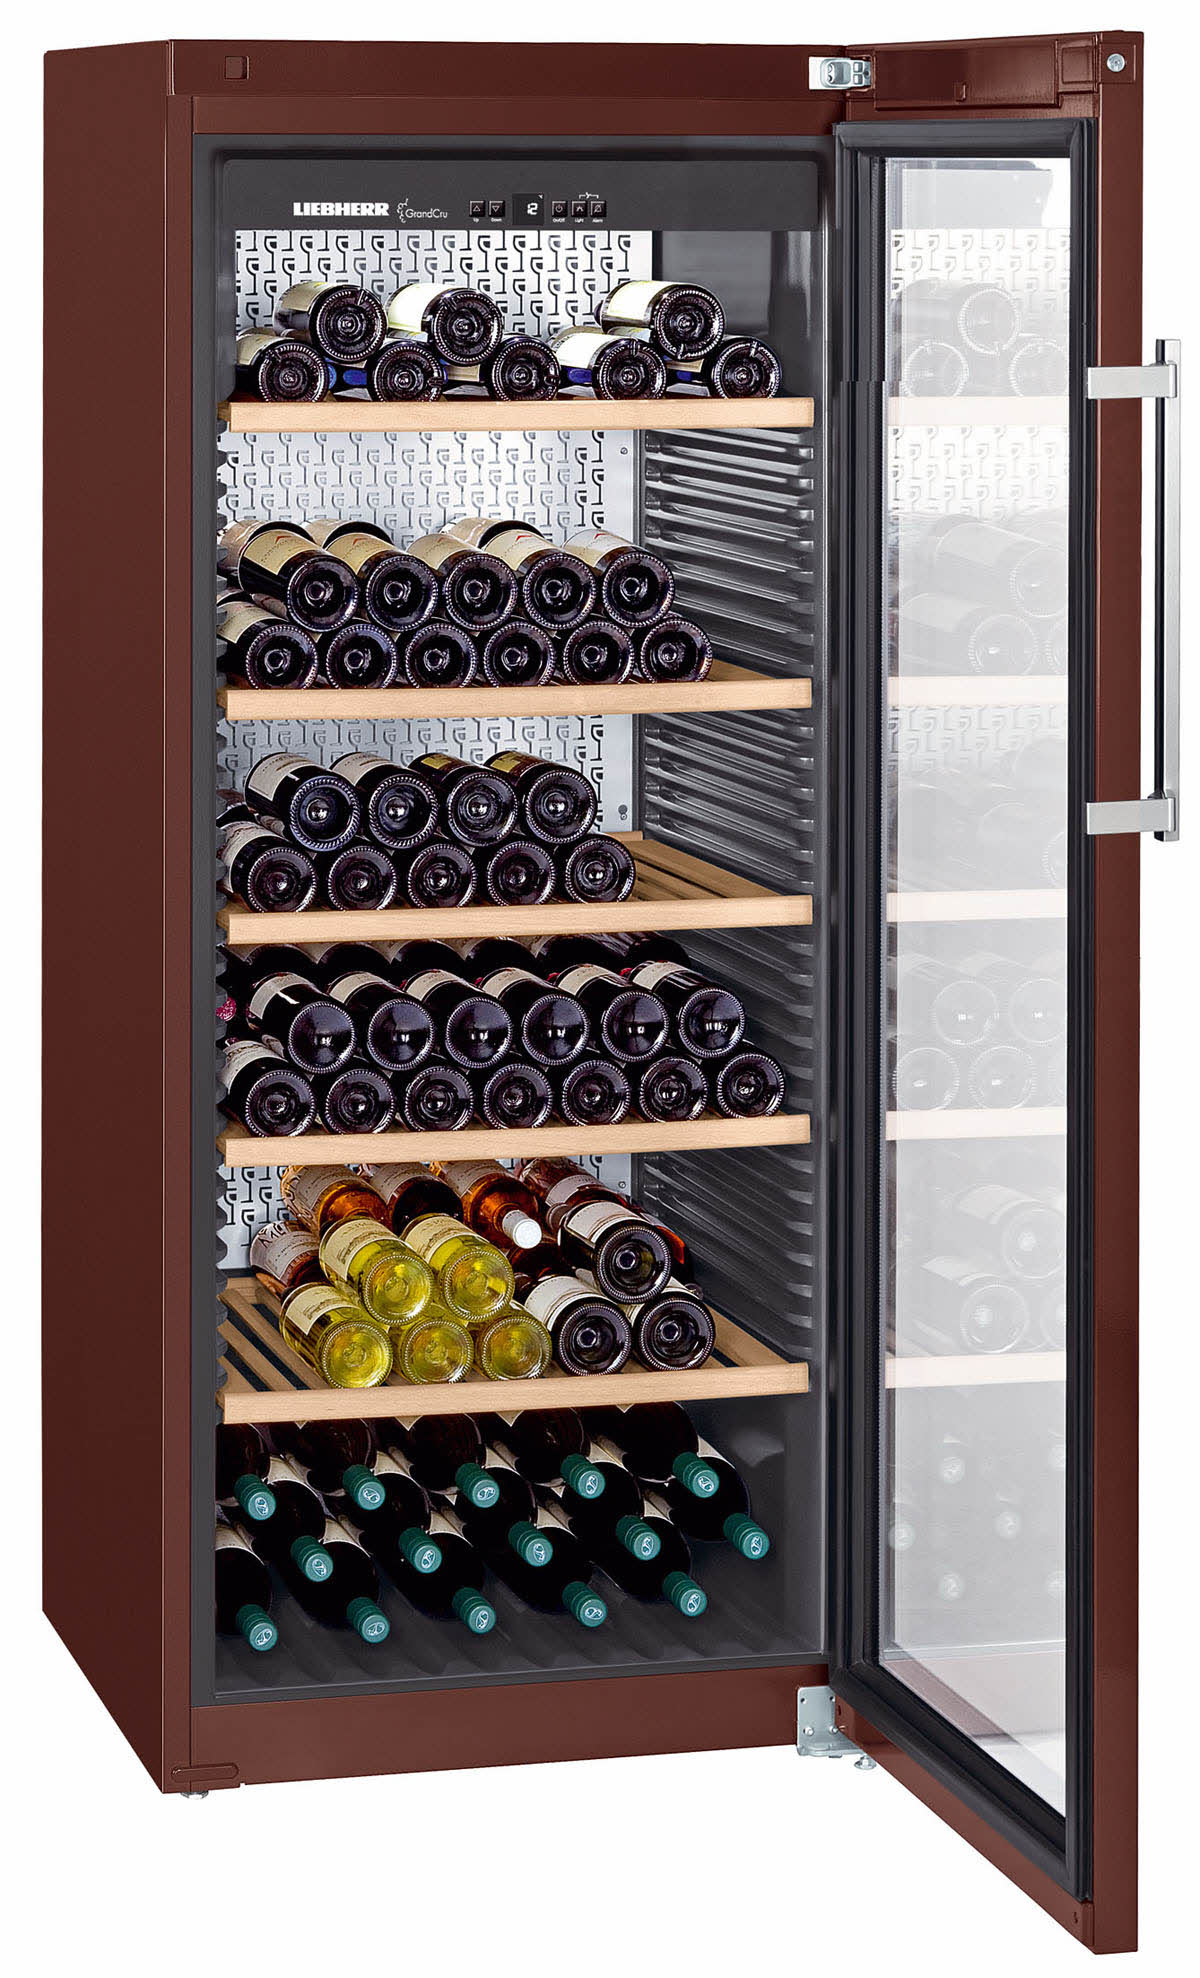 wkt 4552 wine cabinets grand cru liebherr armoire vin. Black Bedroom Furniture Sets. Home Design Ideas